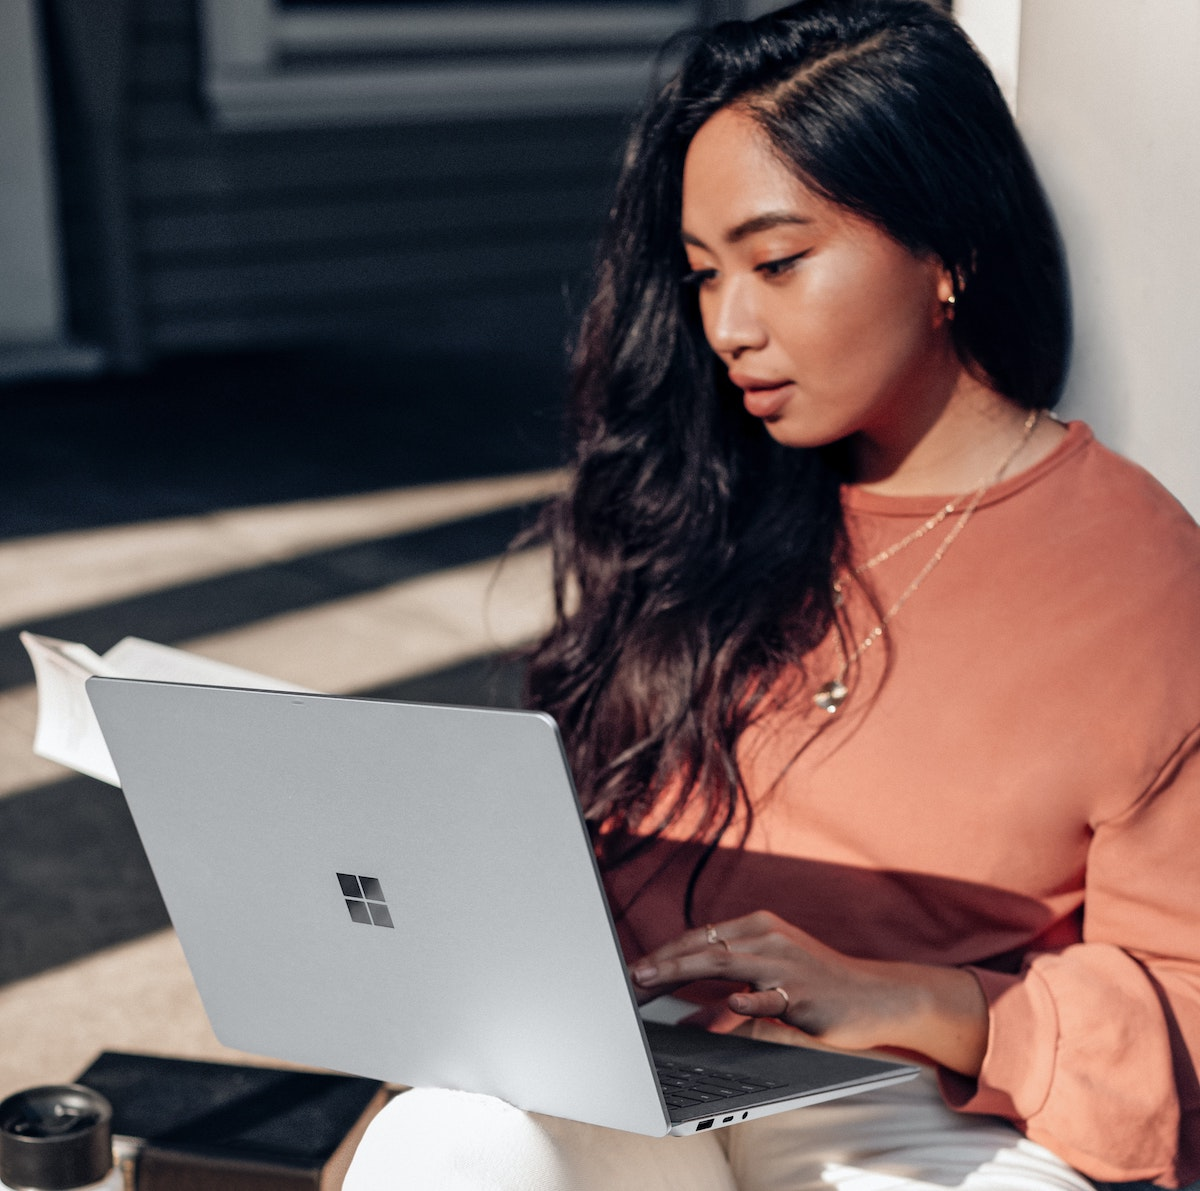 student filling in UCAS application on laptop outdoors